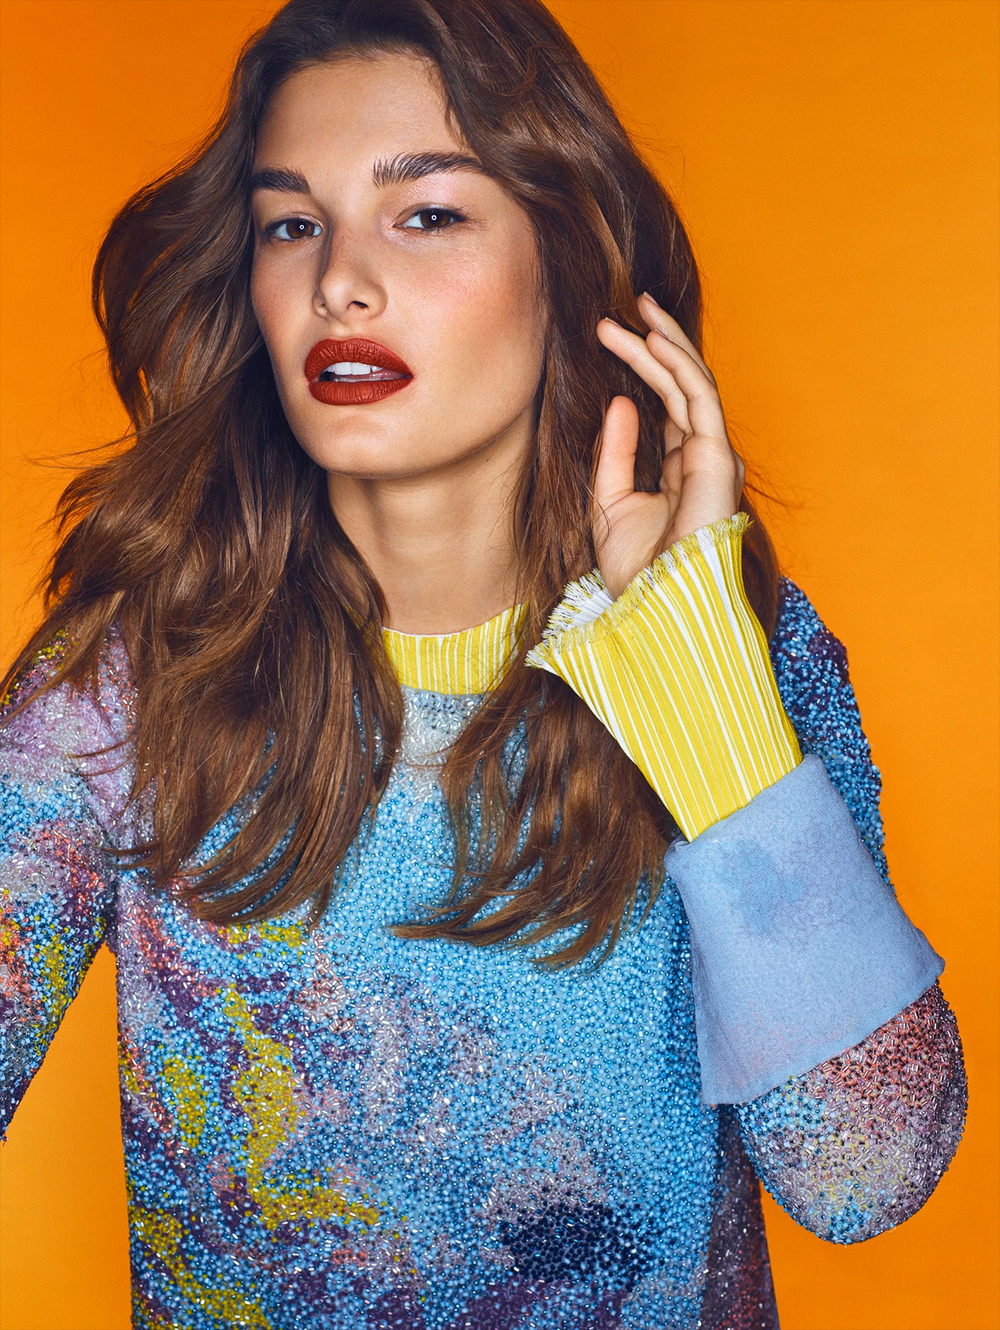 Selfie Ophelie Guillermand nudes (46 foto and video), Pussy, Is a cute, Twitter, bra 2019